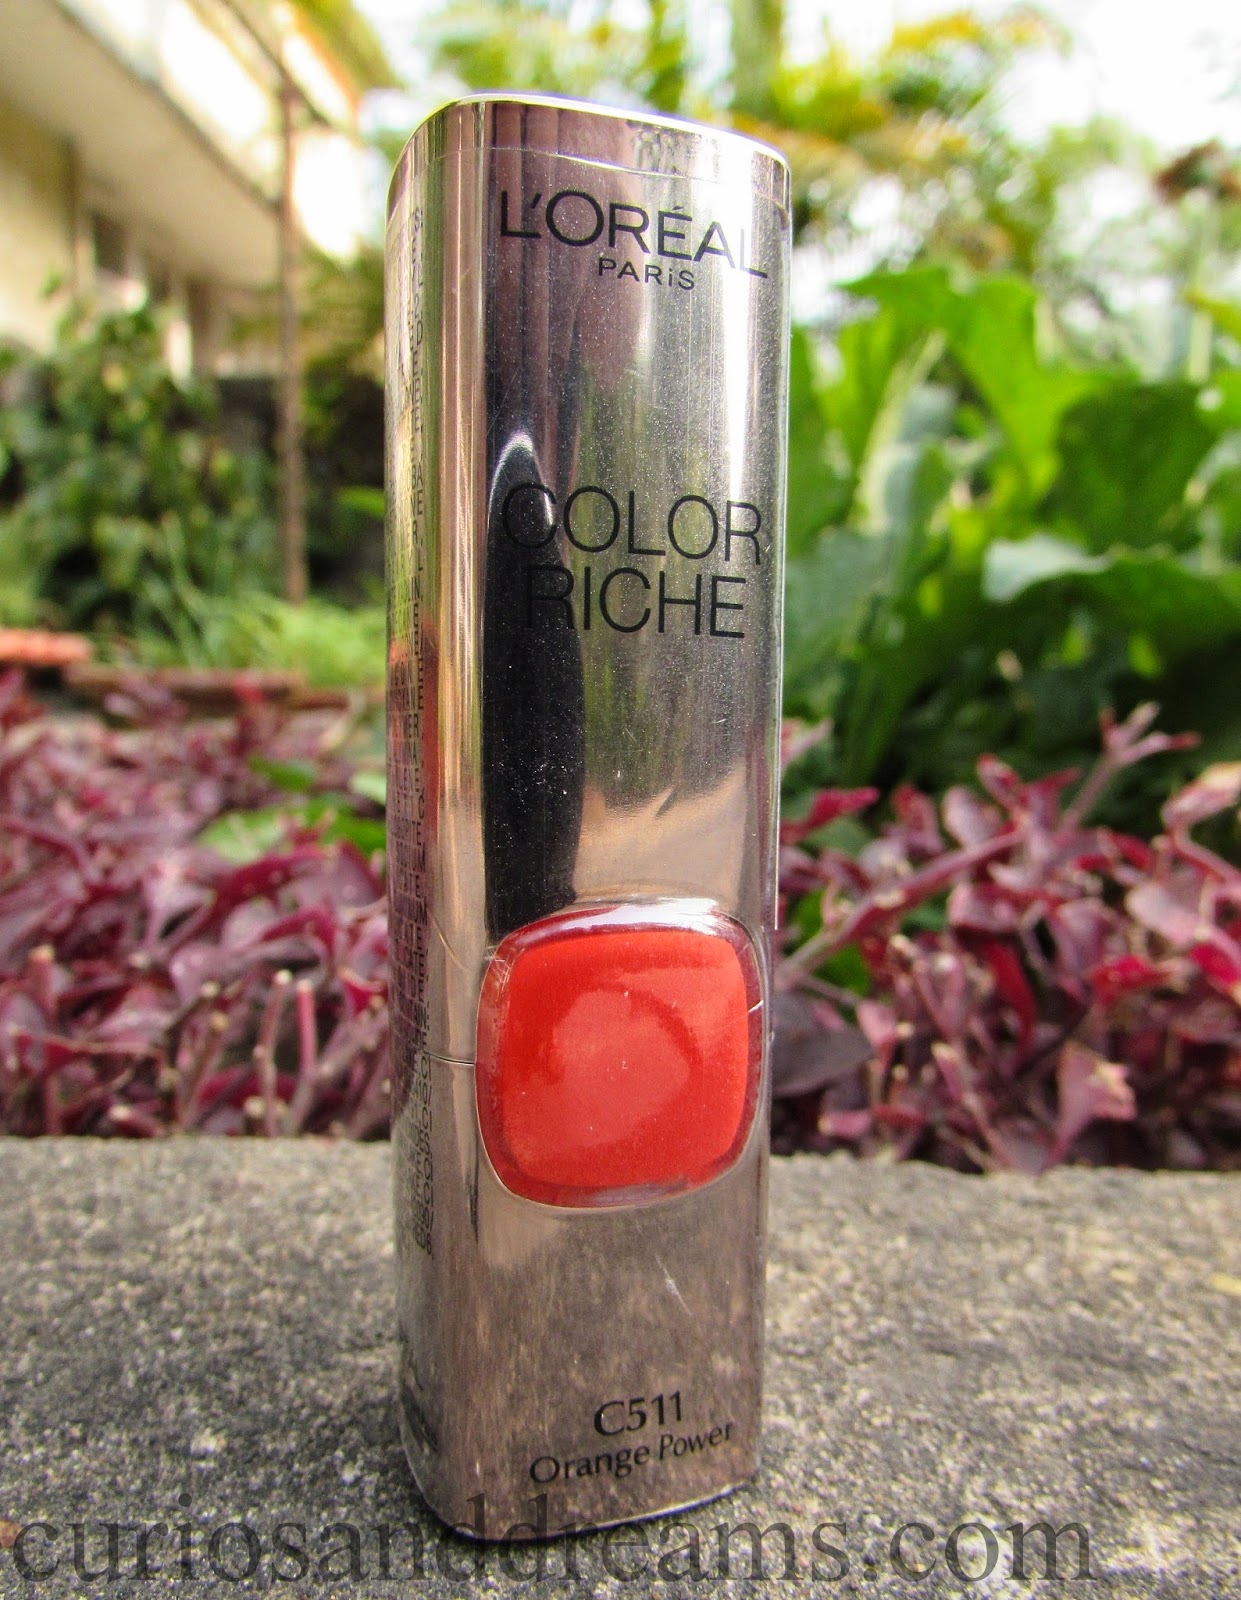 L'Oreal Paris Color Riche Moisture Matte Lipstick Orange Power Review, L'Oreal Paris Color Riche Moisture Matte Lipstick review